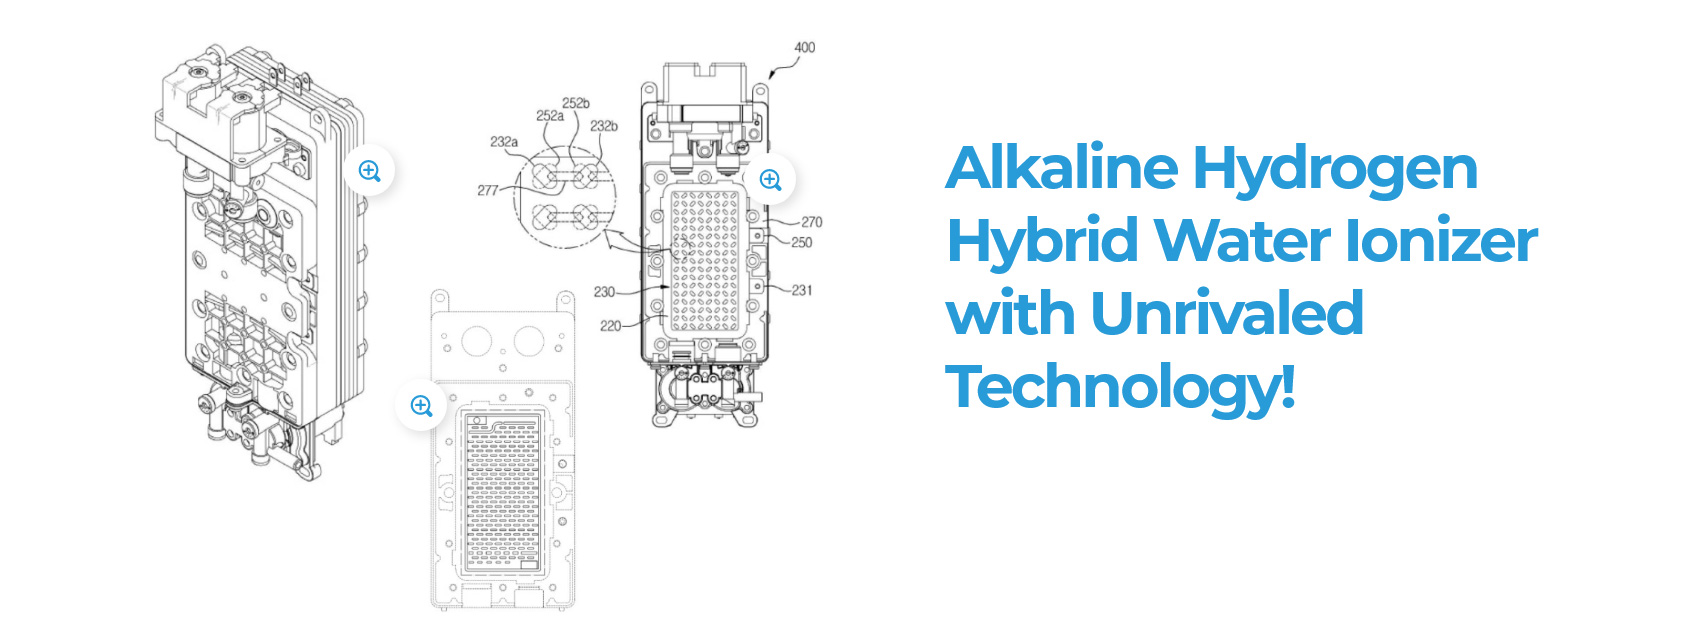 Alkaline Hydrogen Hybrid Water Ionizer with Unrivaled Technology!